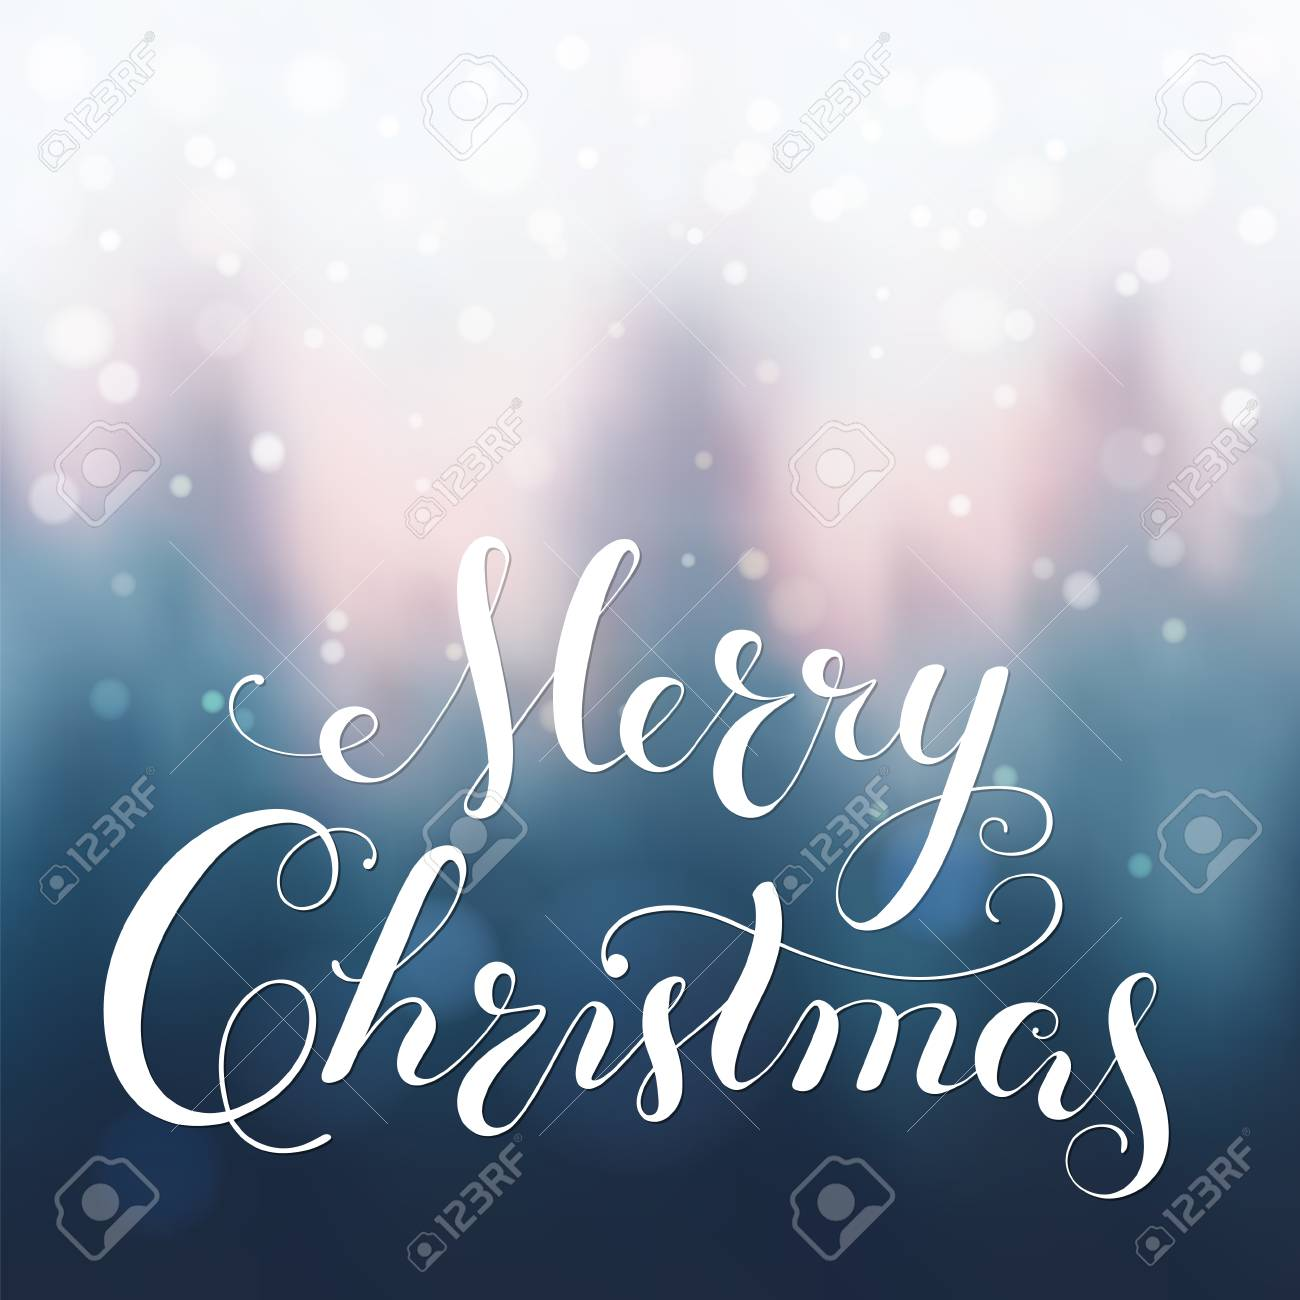 Merry Christmas calligraphy lettering. - 88965450